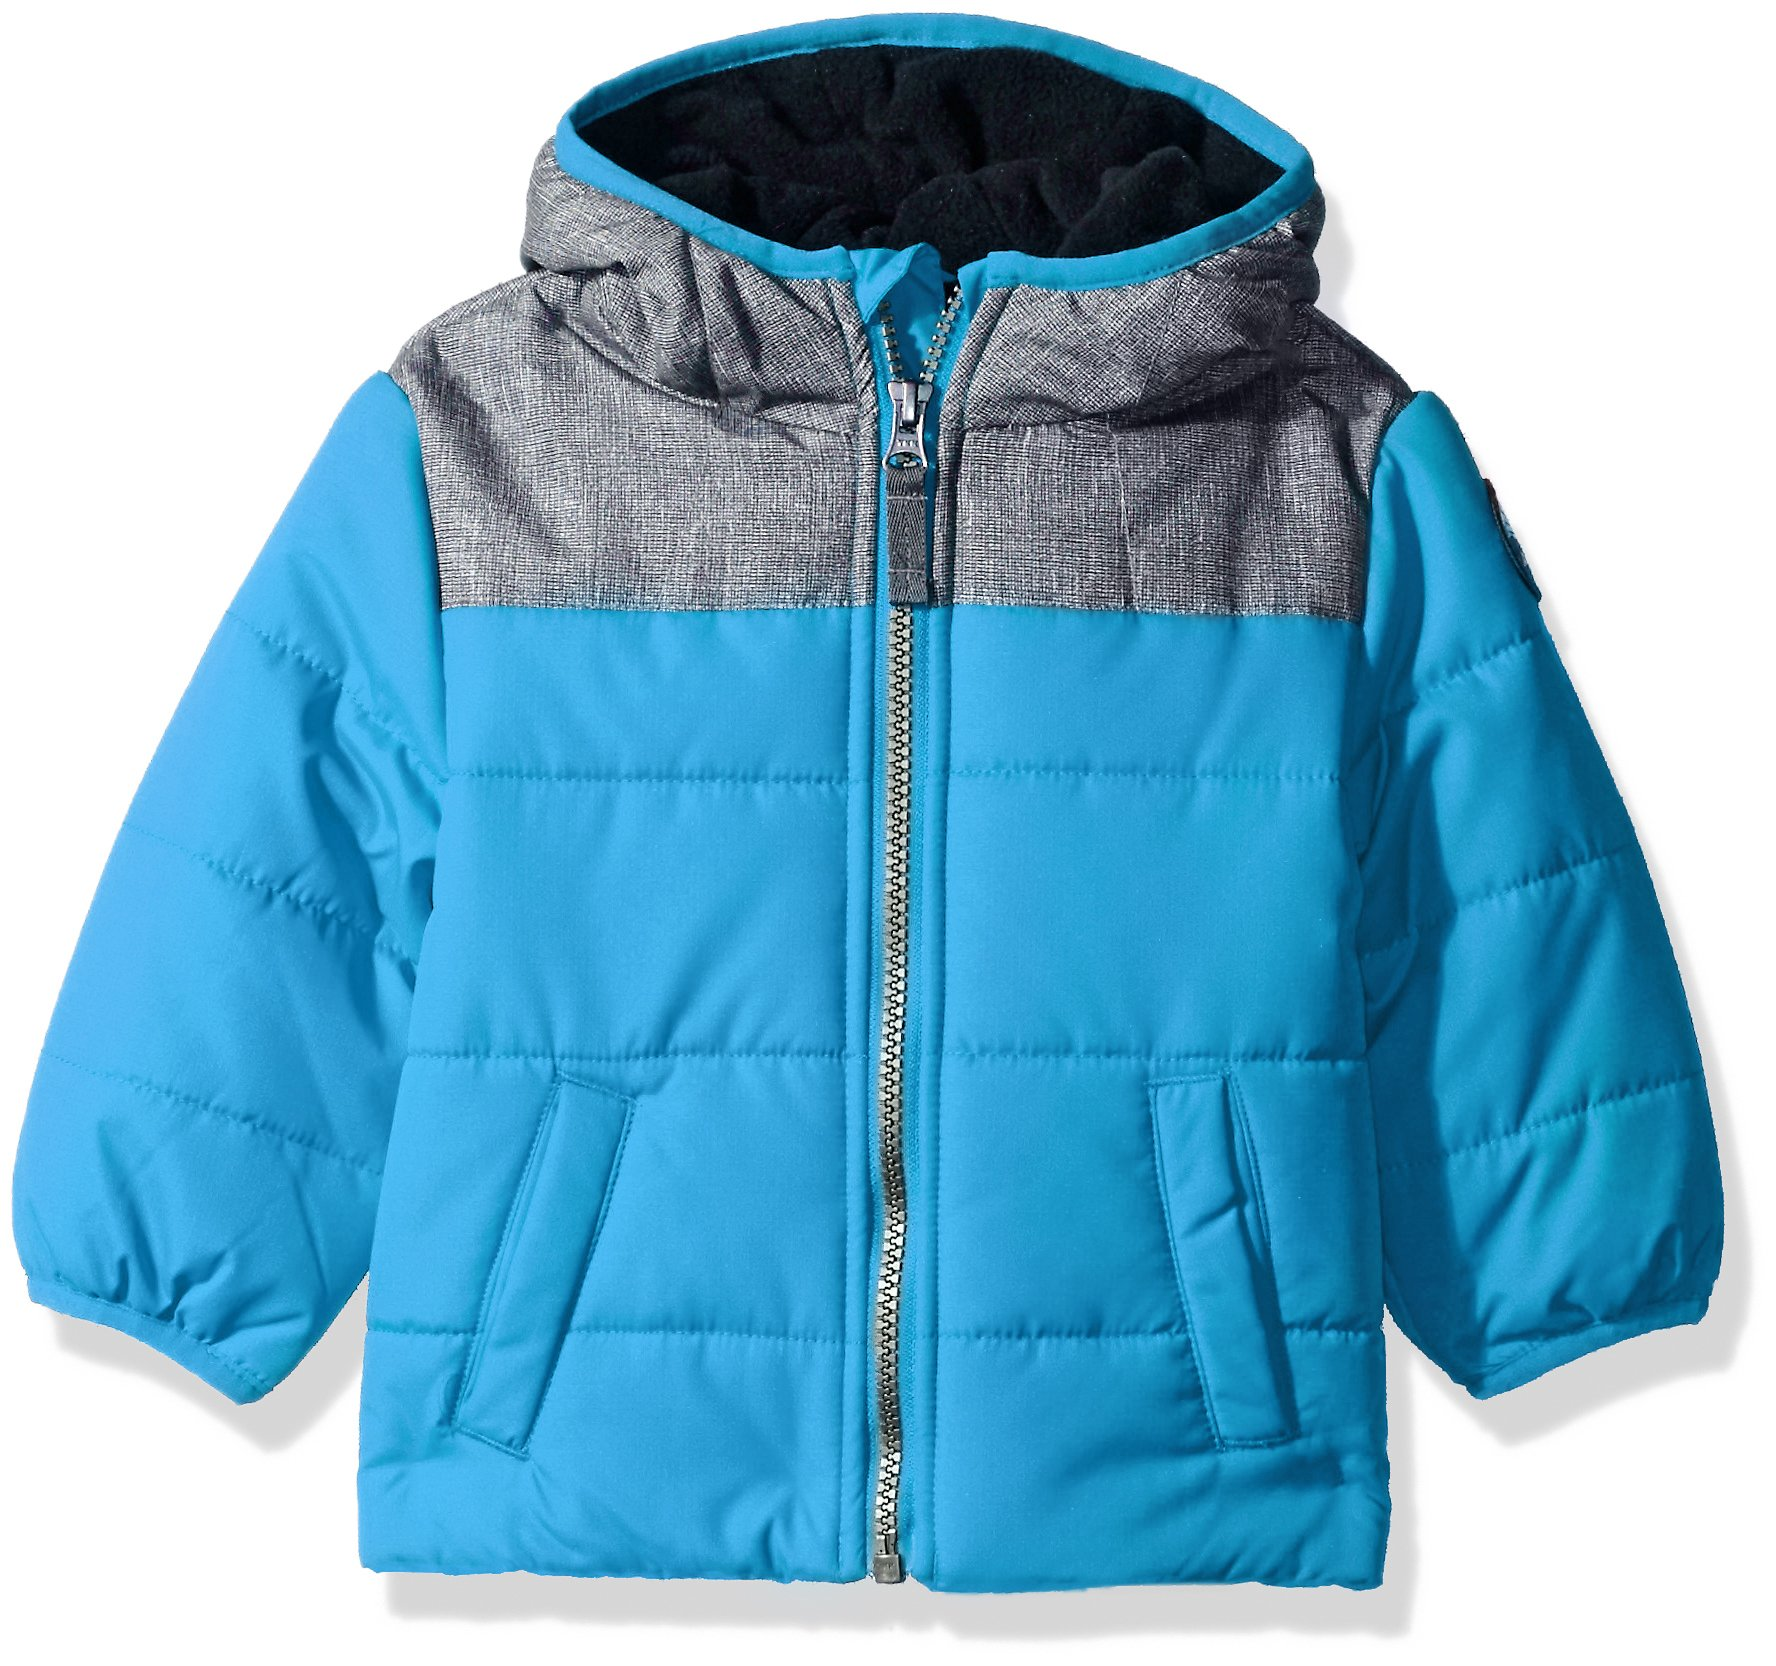 Carter's Baby Boys Puffer Jacket Coat with Soft Fabric Yolk, Teal/Navy, 18M